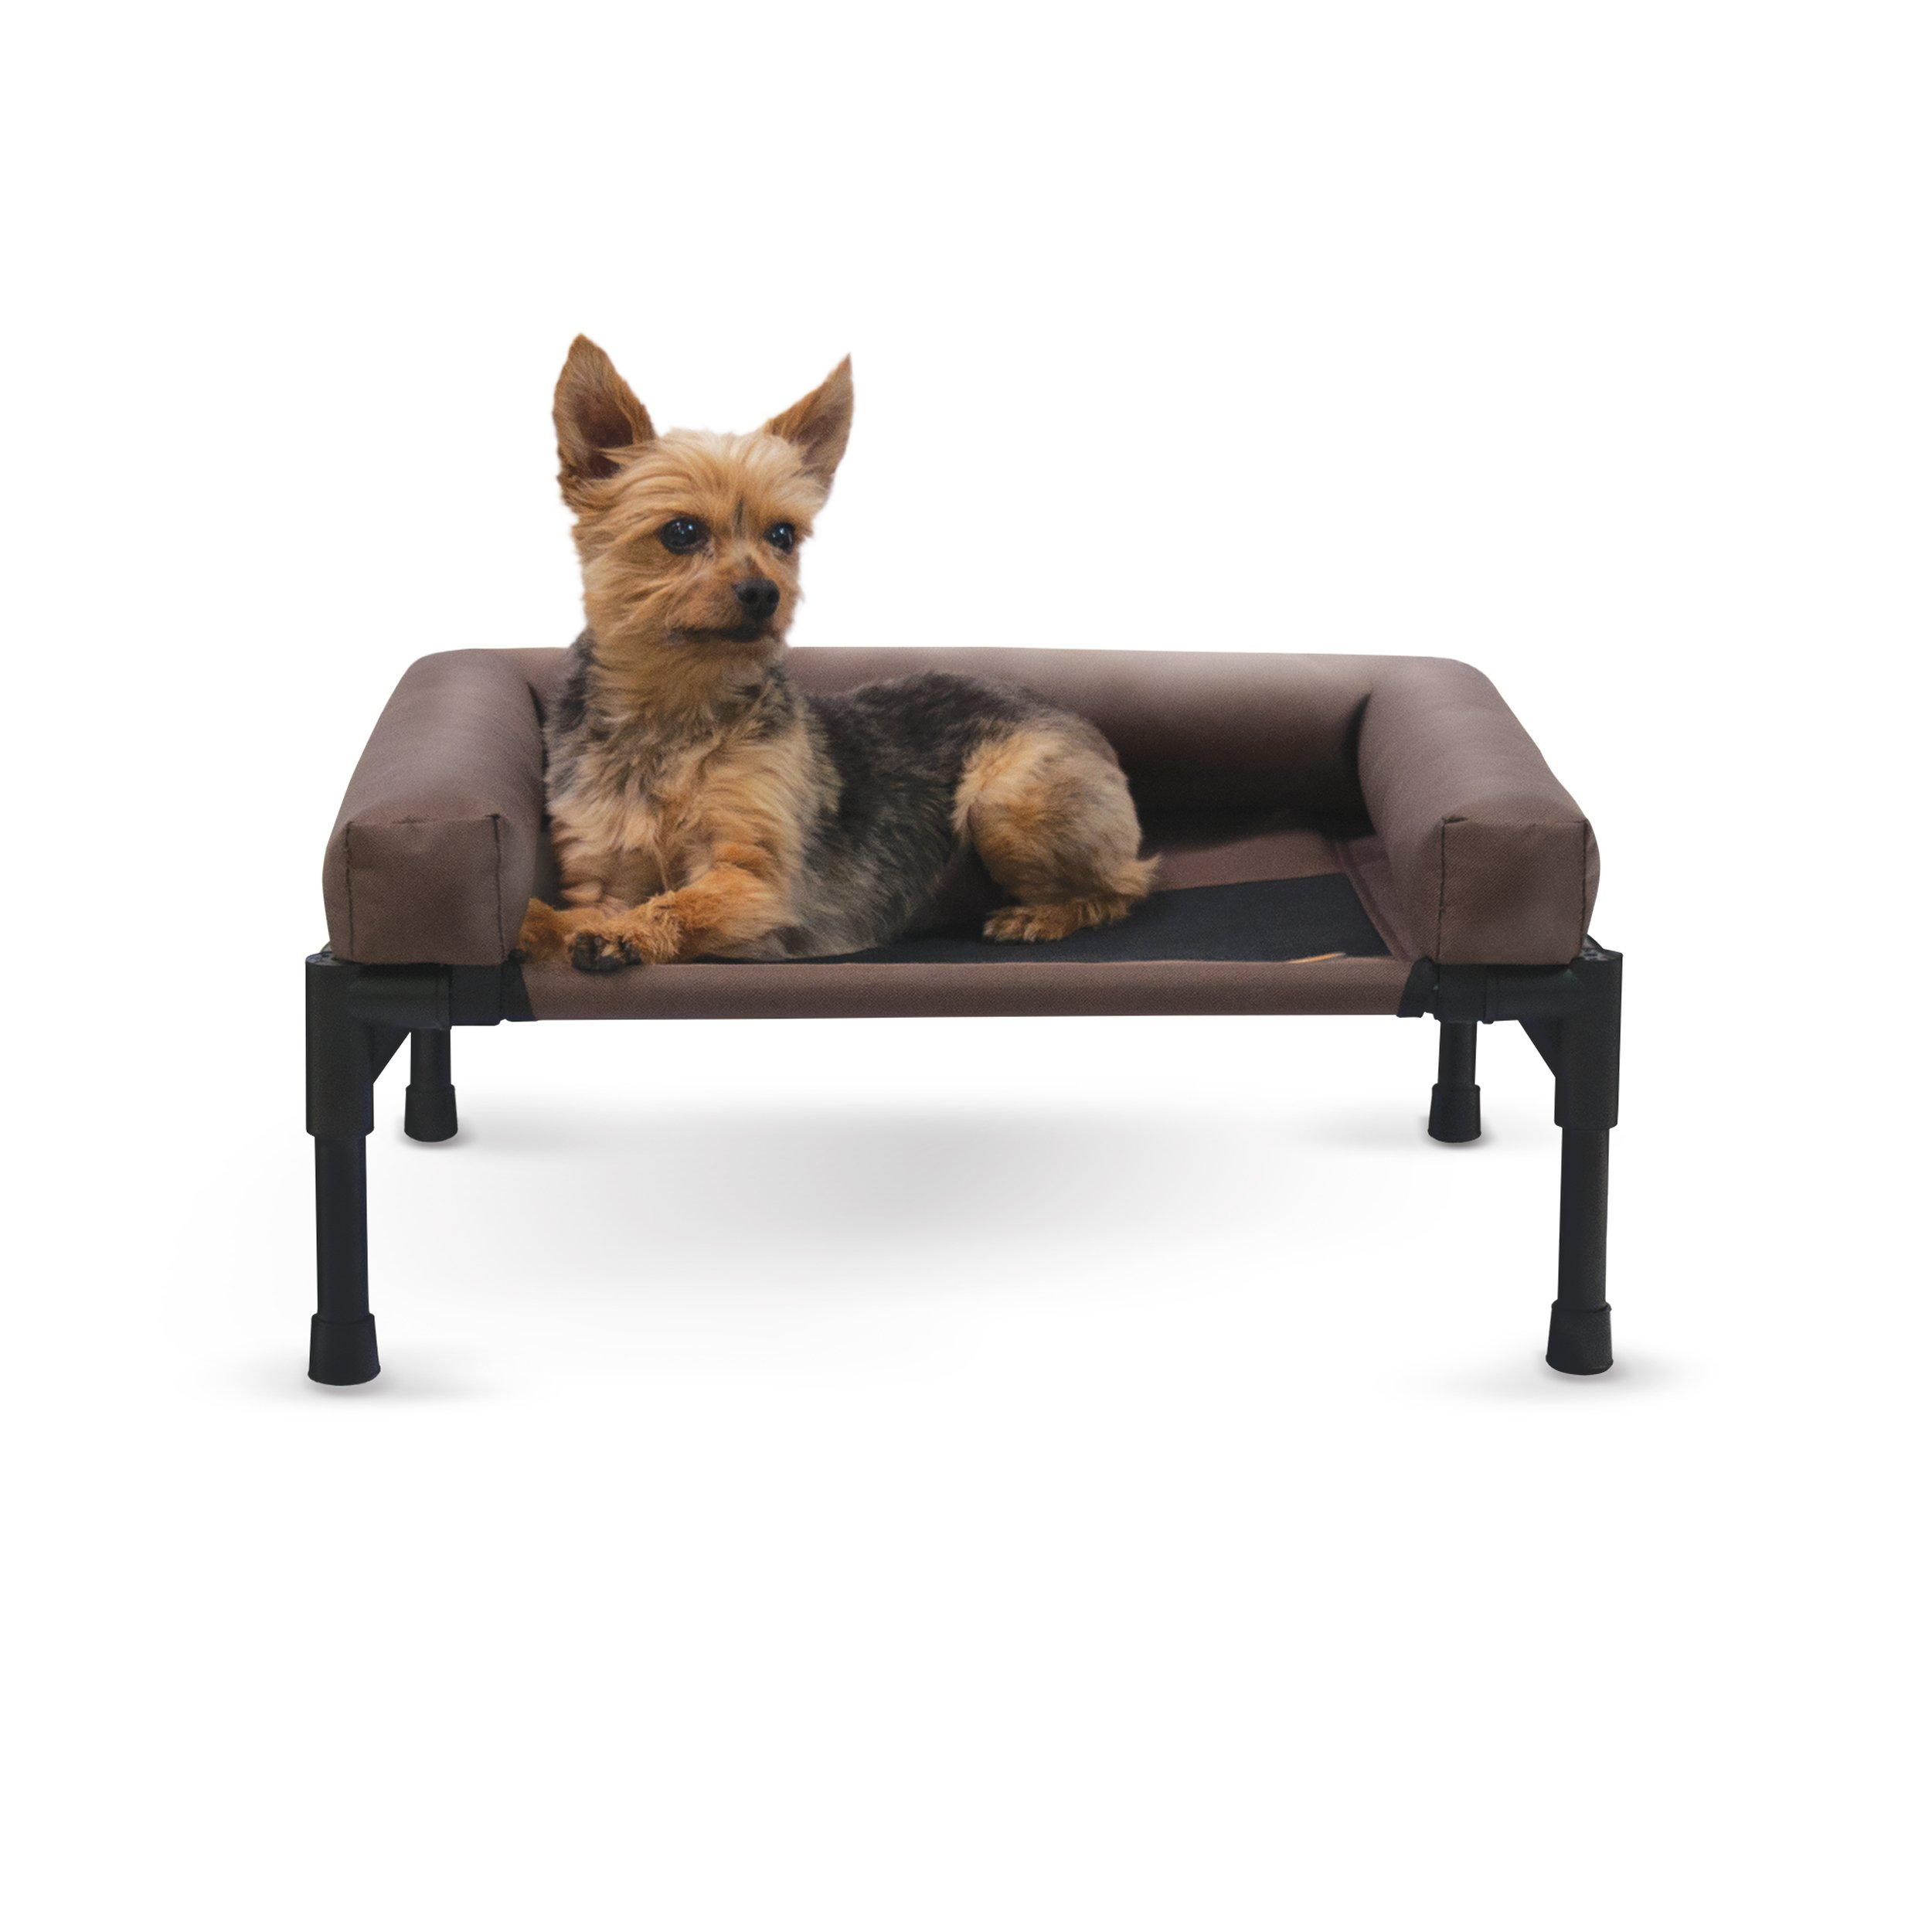 K&H Pet Products Original Bolster Pet Cot Elevated Pet Bed Small Chocolate/Mesh 17'' x 22'' x 7''